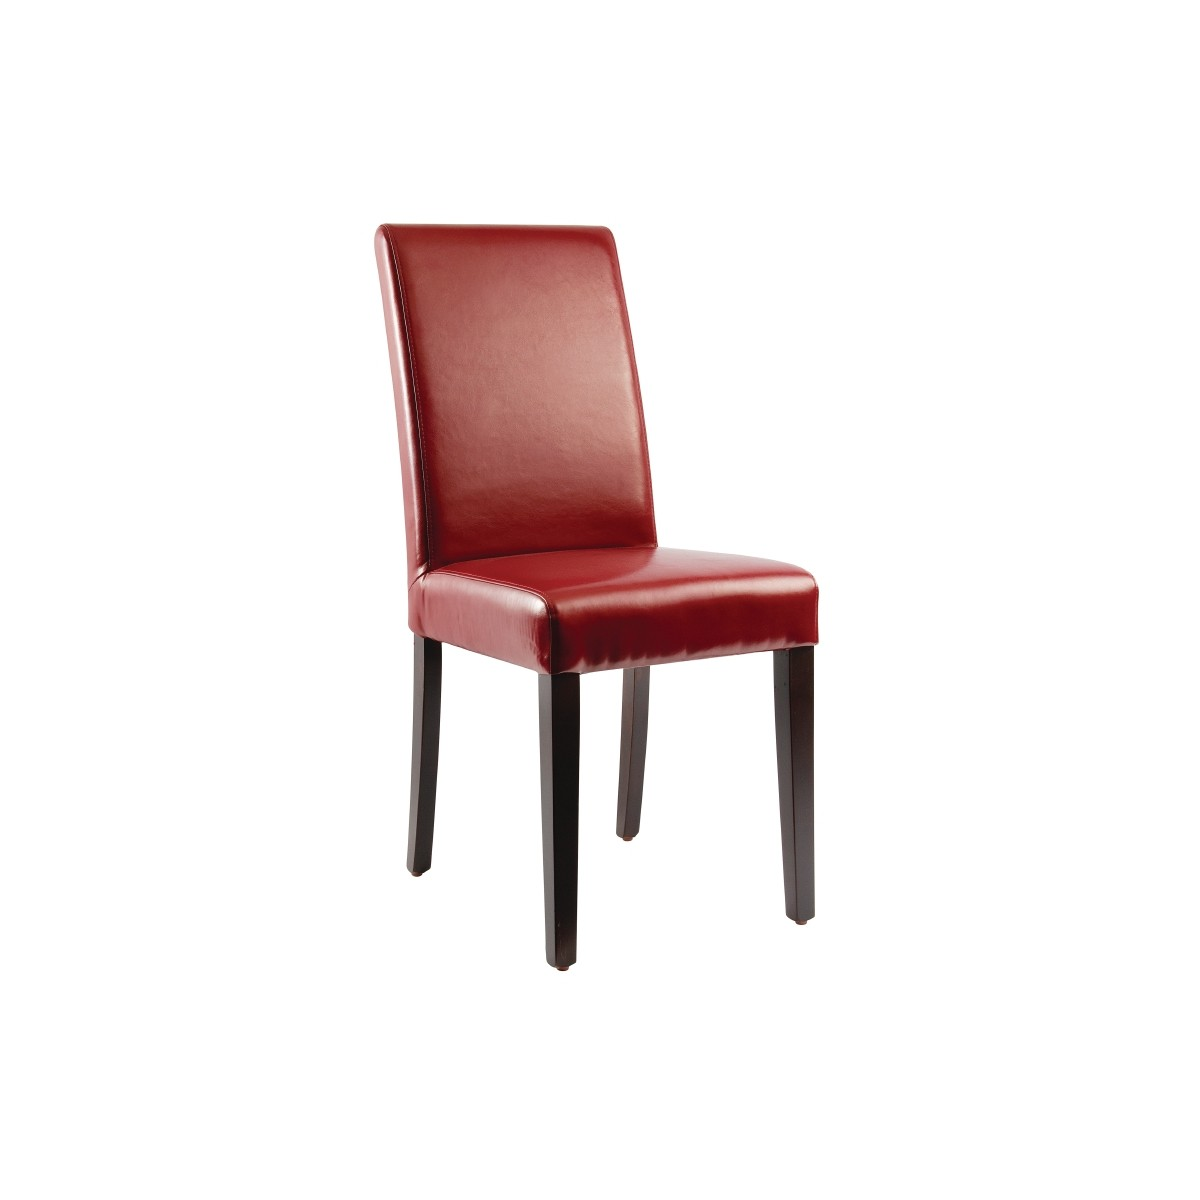 Chaises en simili cuir rouge gastromastro for Chaises simili cuir marron